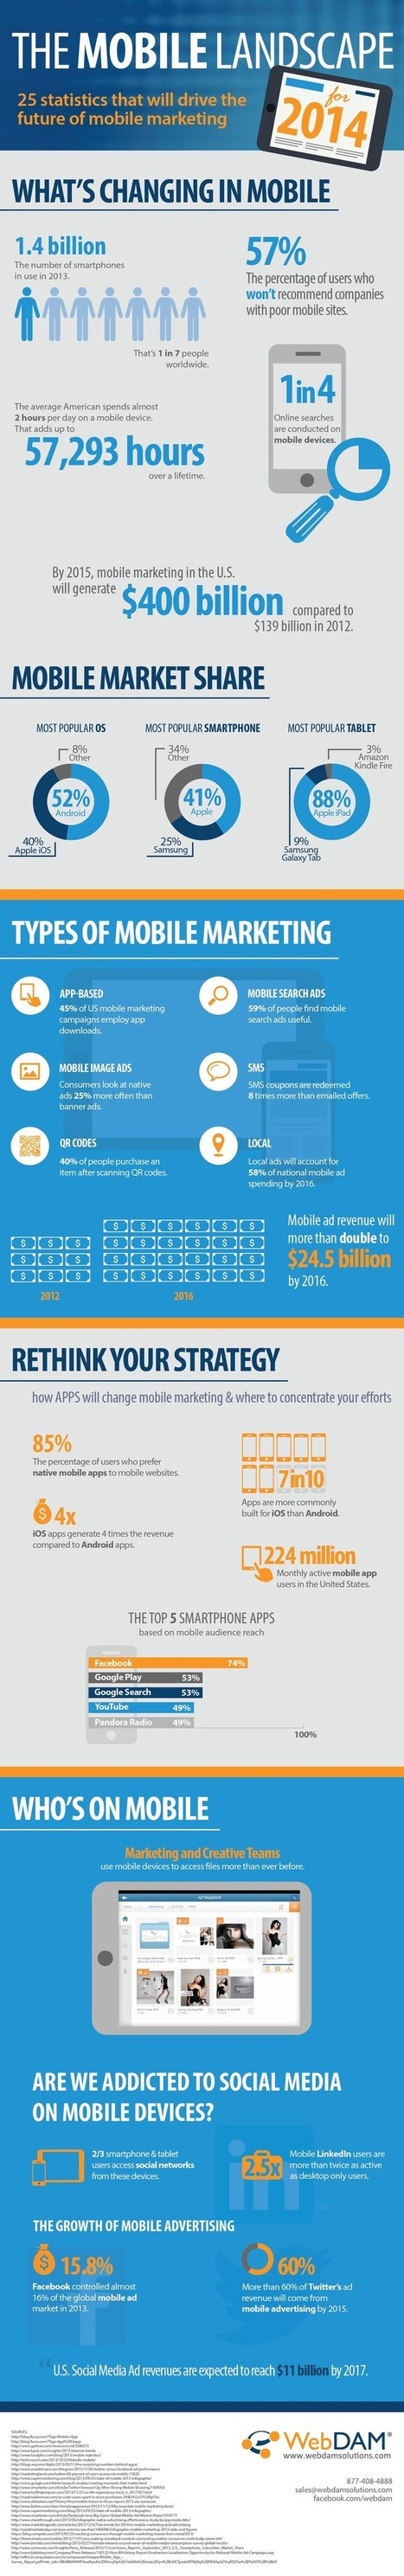 25 chiffres qui montrent l'importance du marketing mobile - #Arobasenet | Web 2.0 infos | Scoop.it